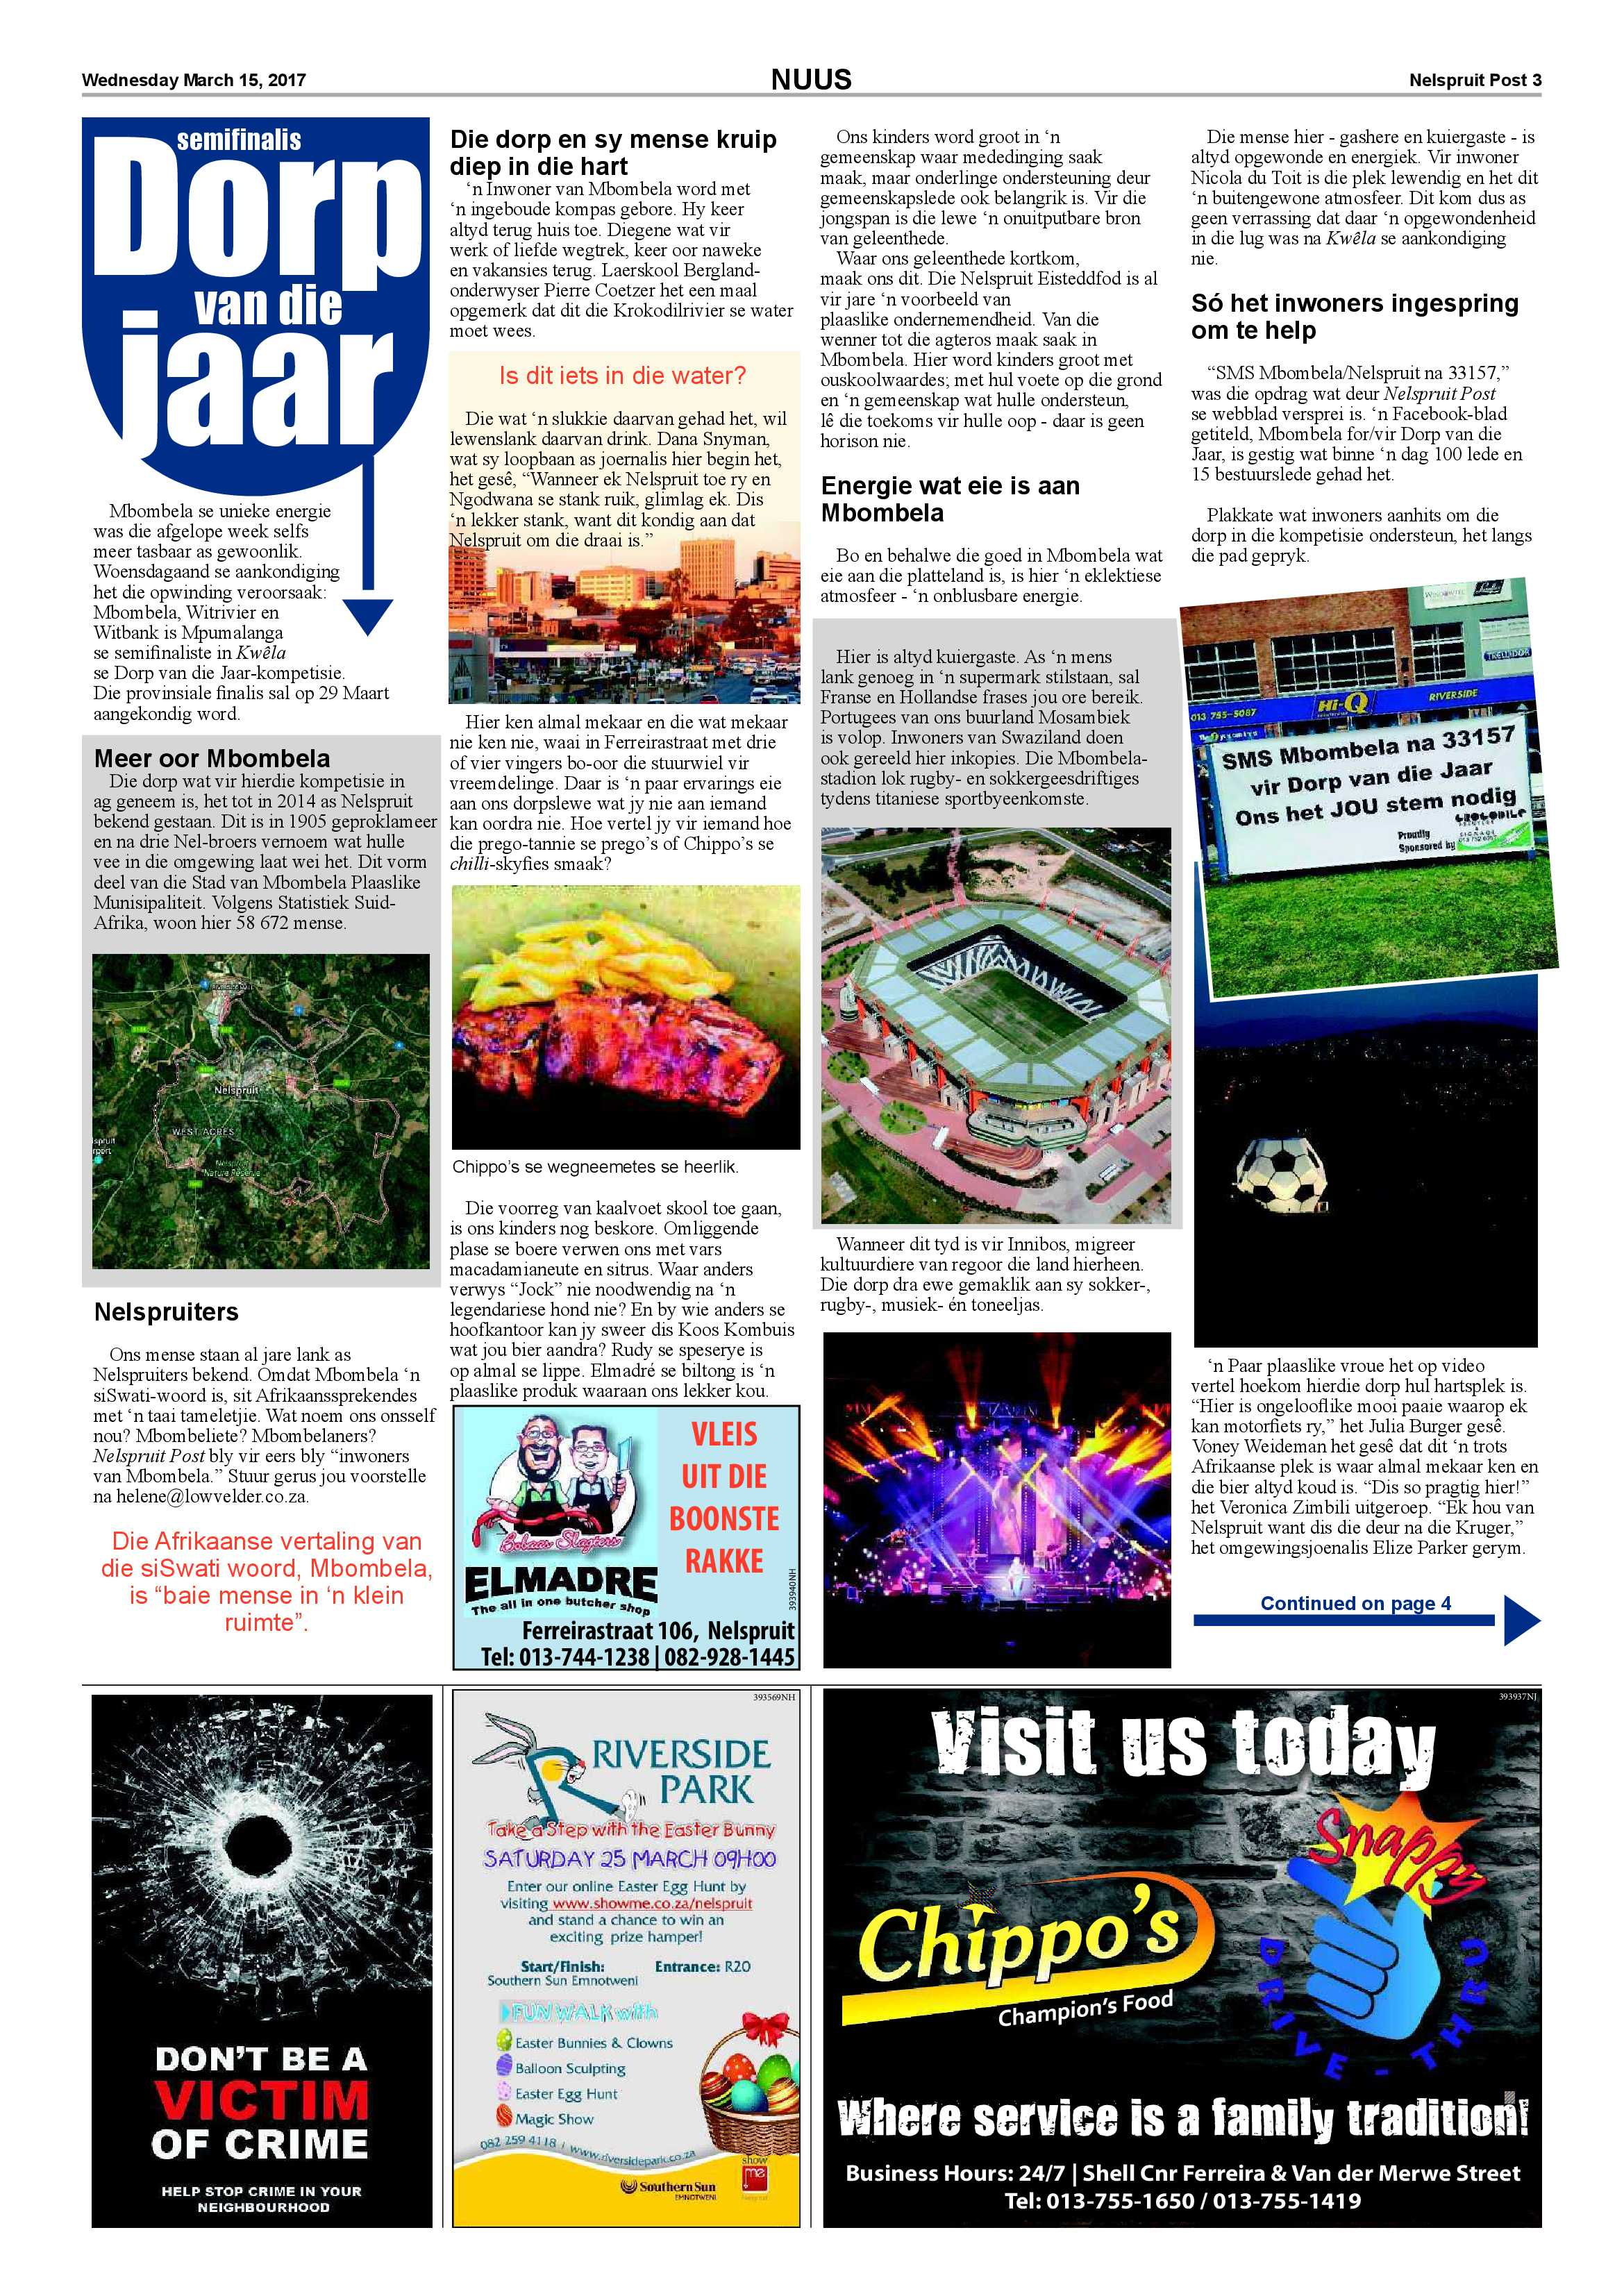 Posts for march page 7 - Nelspruit Post 15 March 2017 Epapers Page 3